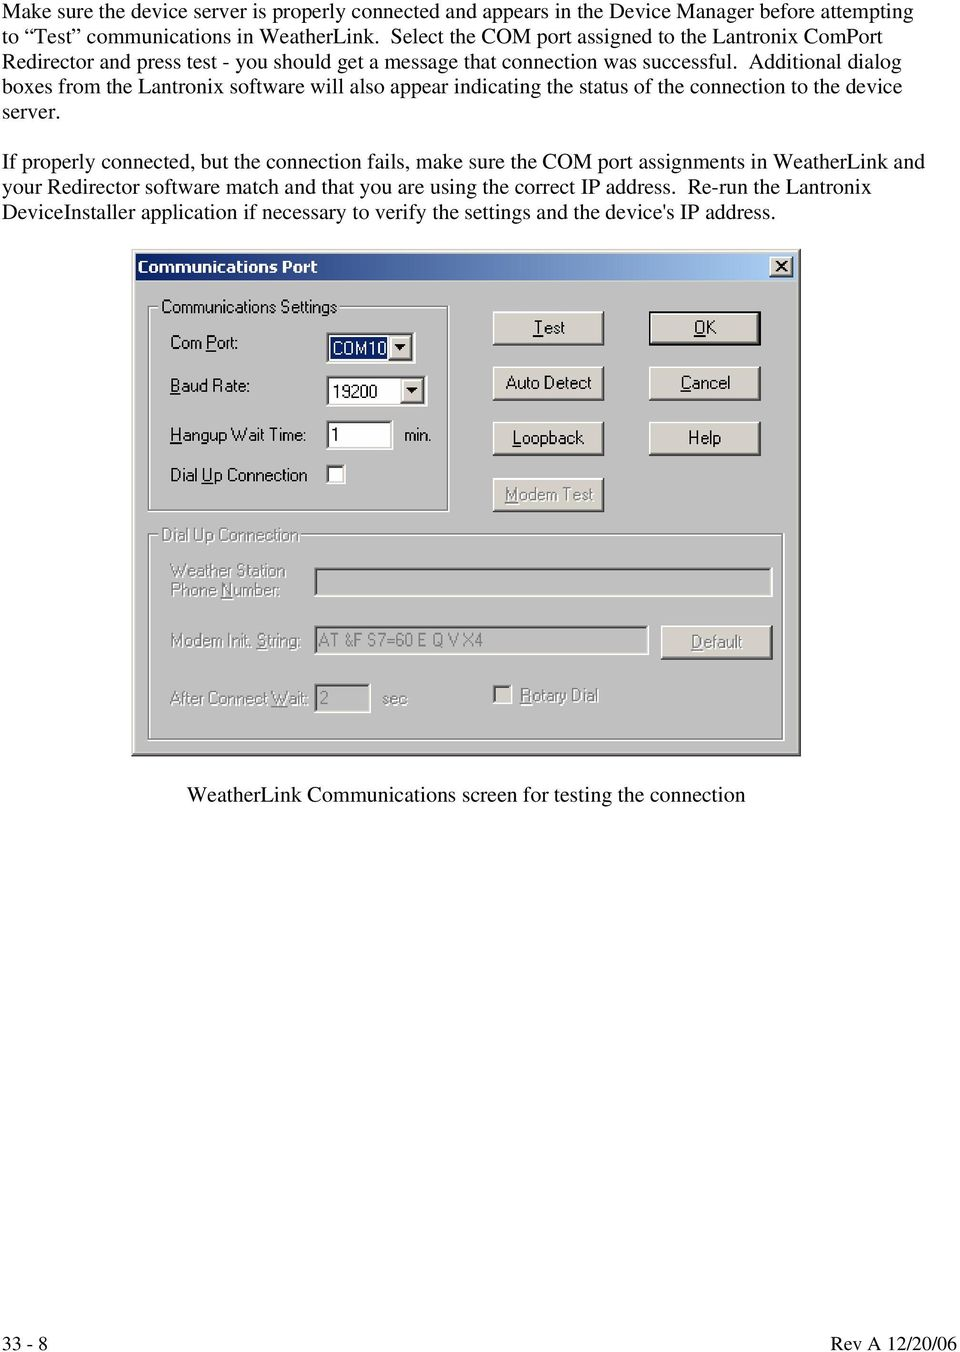 Additional dialog boxes from the Lantronix software will also appear indicating the status of the connection to the device server.